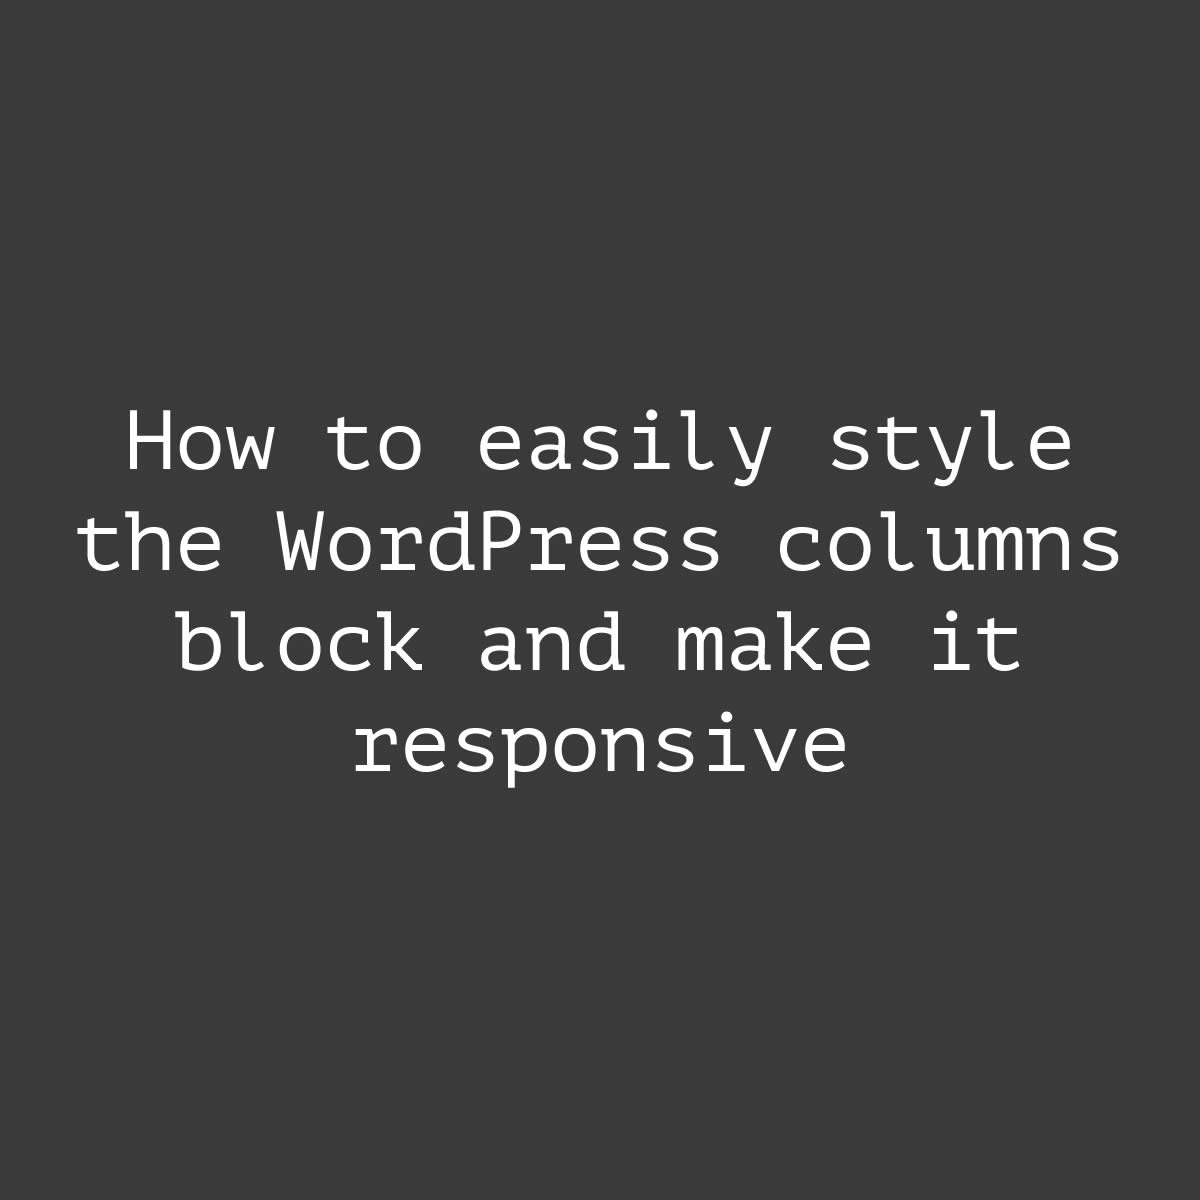 How to easily style the WordPress columns block and make it responsive